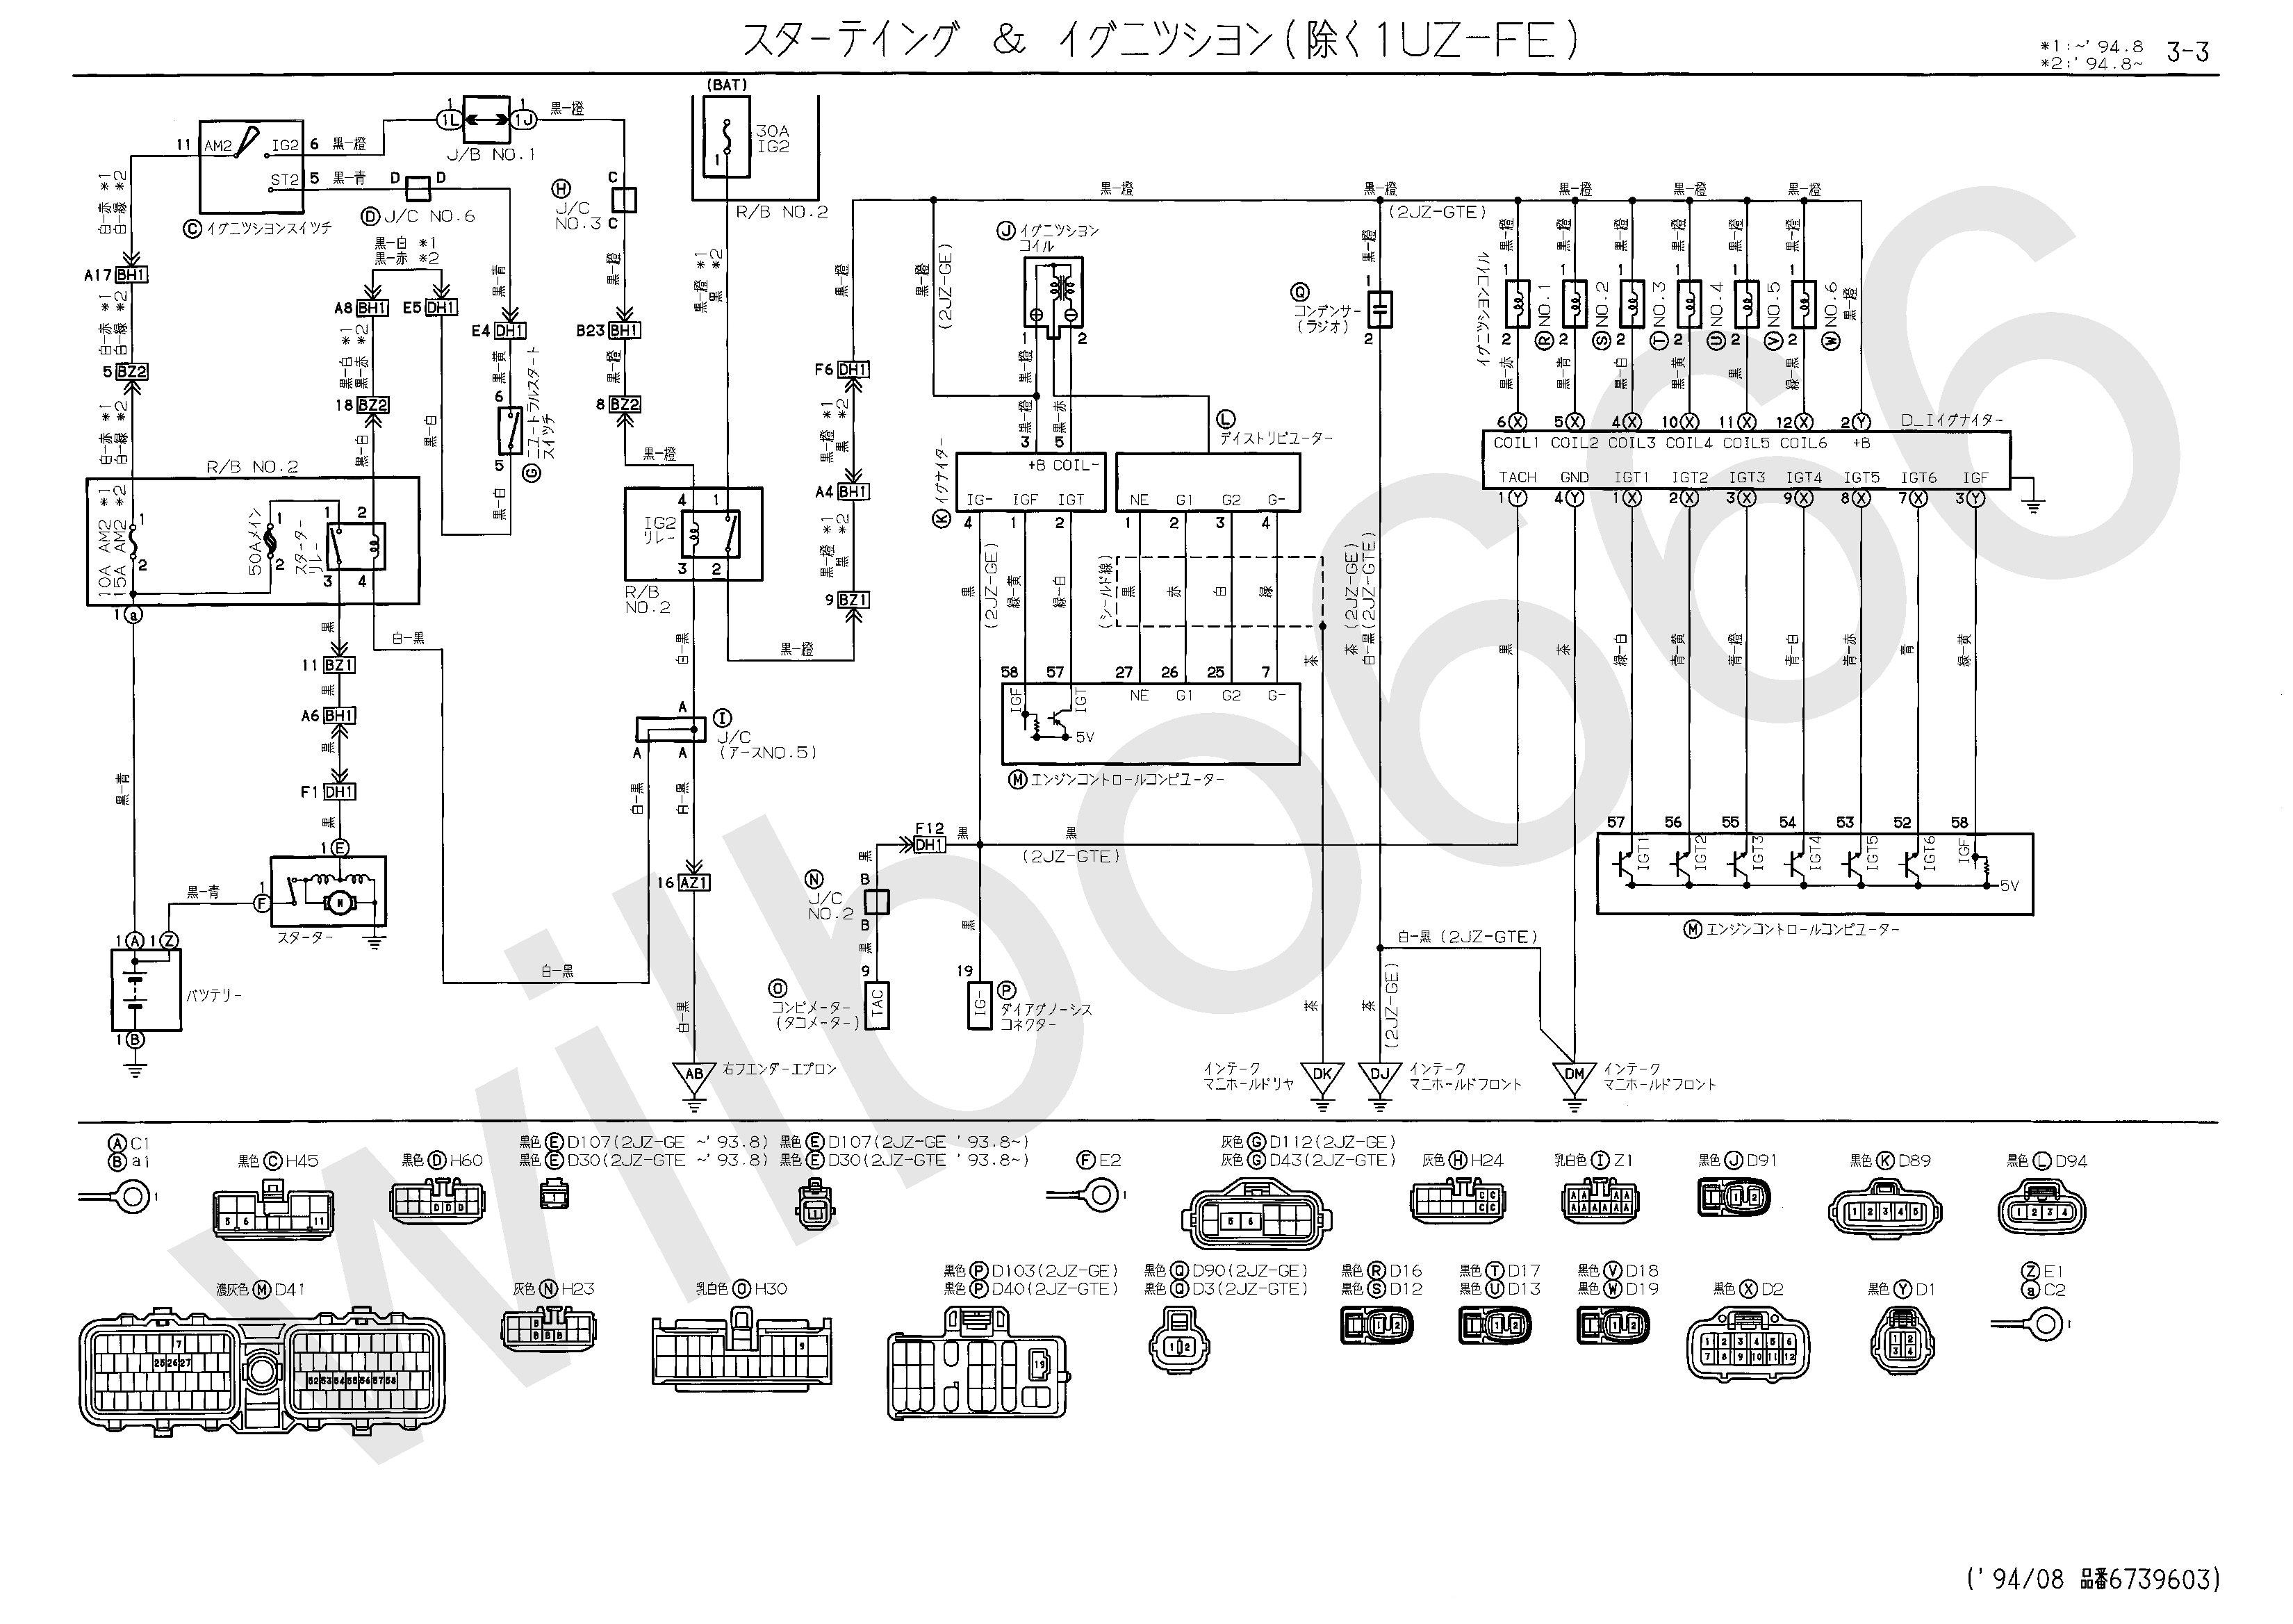 Wiring Diagrams For Engine Lathes likewise Dayton Drum Switch 2x440 Wiring Diagram moreover Nema Size 1 Motor Starter Wiring Diagram in addition 3 Phase Motor Wiring Diagram 6 Leads likewise Weg Electric Motor Wiring Diagram. on wiring new motor 207742